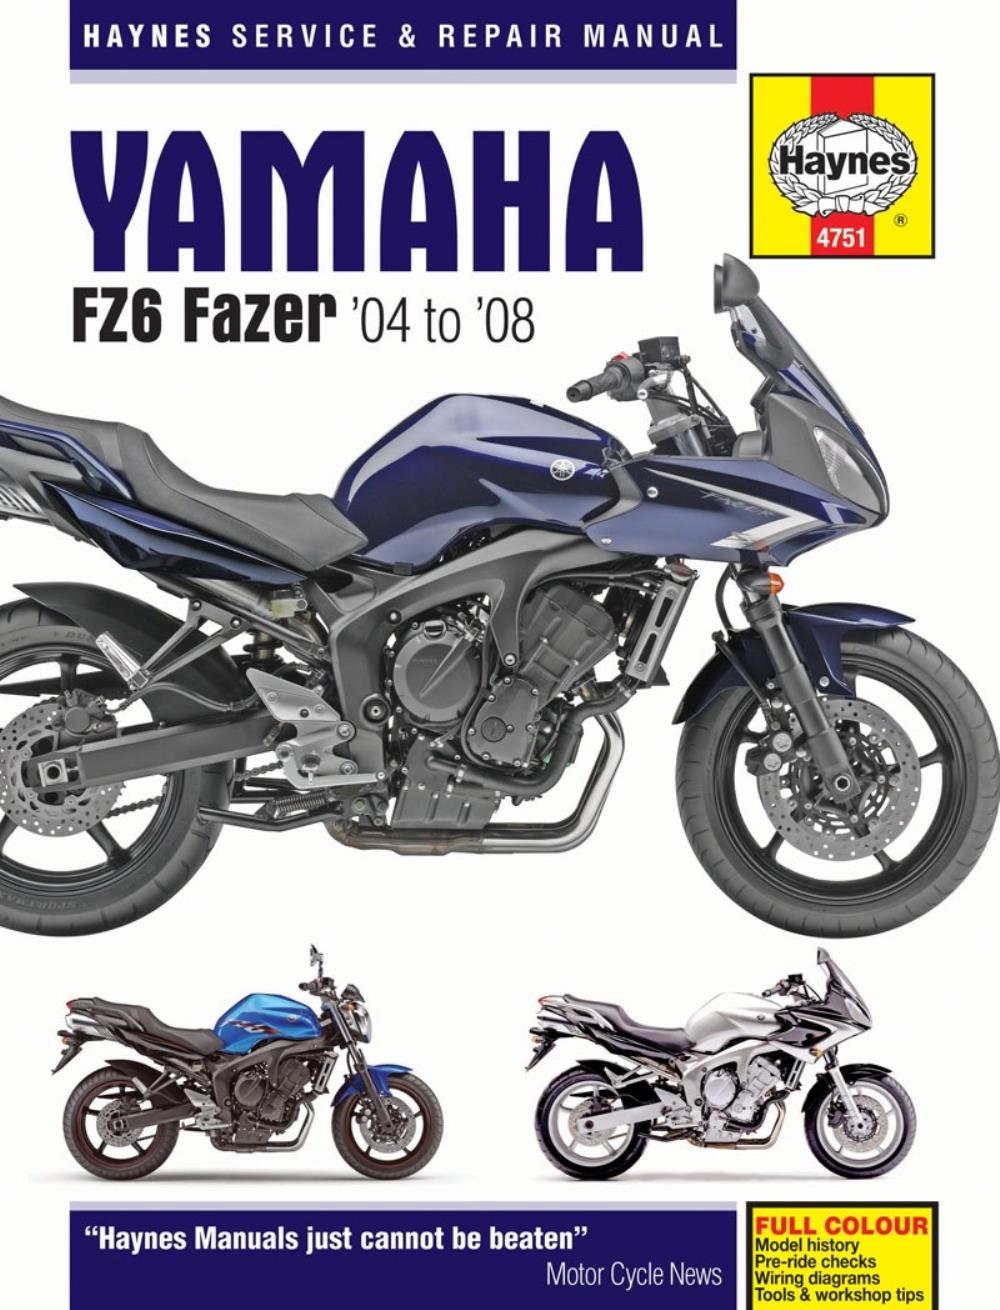 manual haynes for 2006 yamaha fz6 n naked no abs 1b37 1b39 1b3b rh ebay co uk